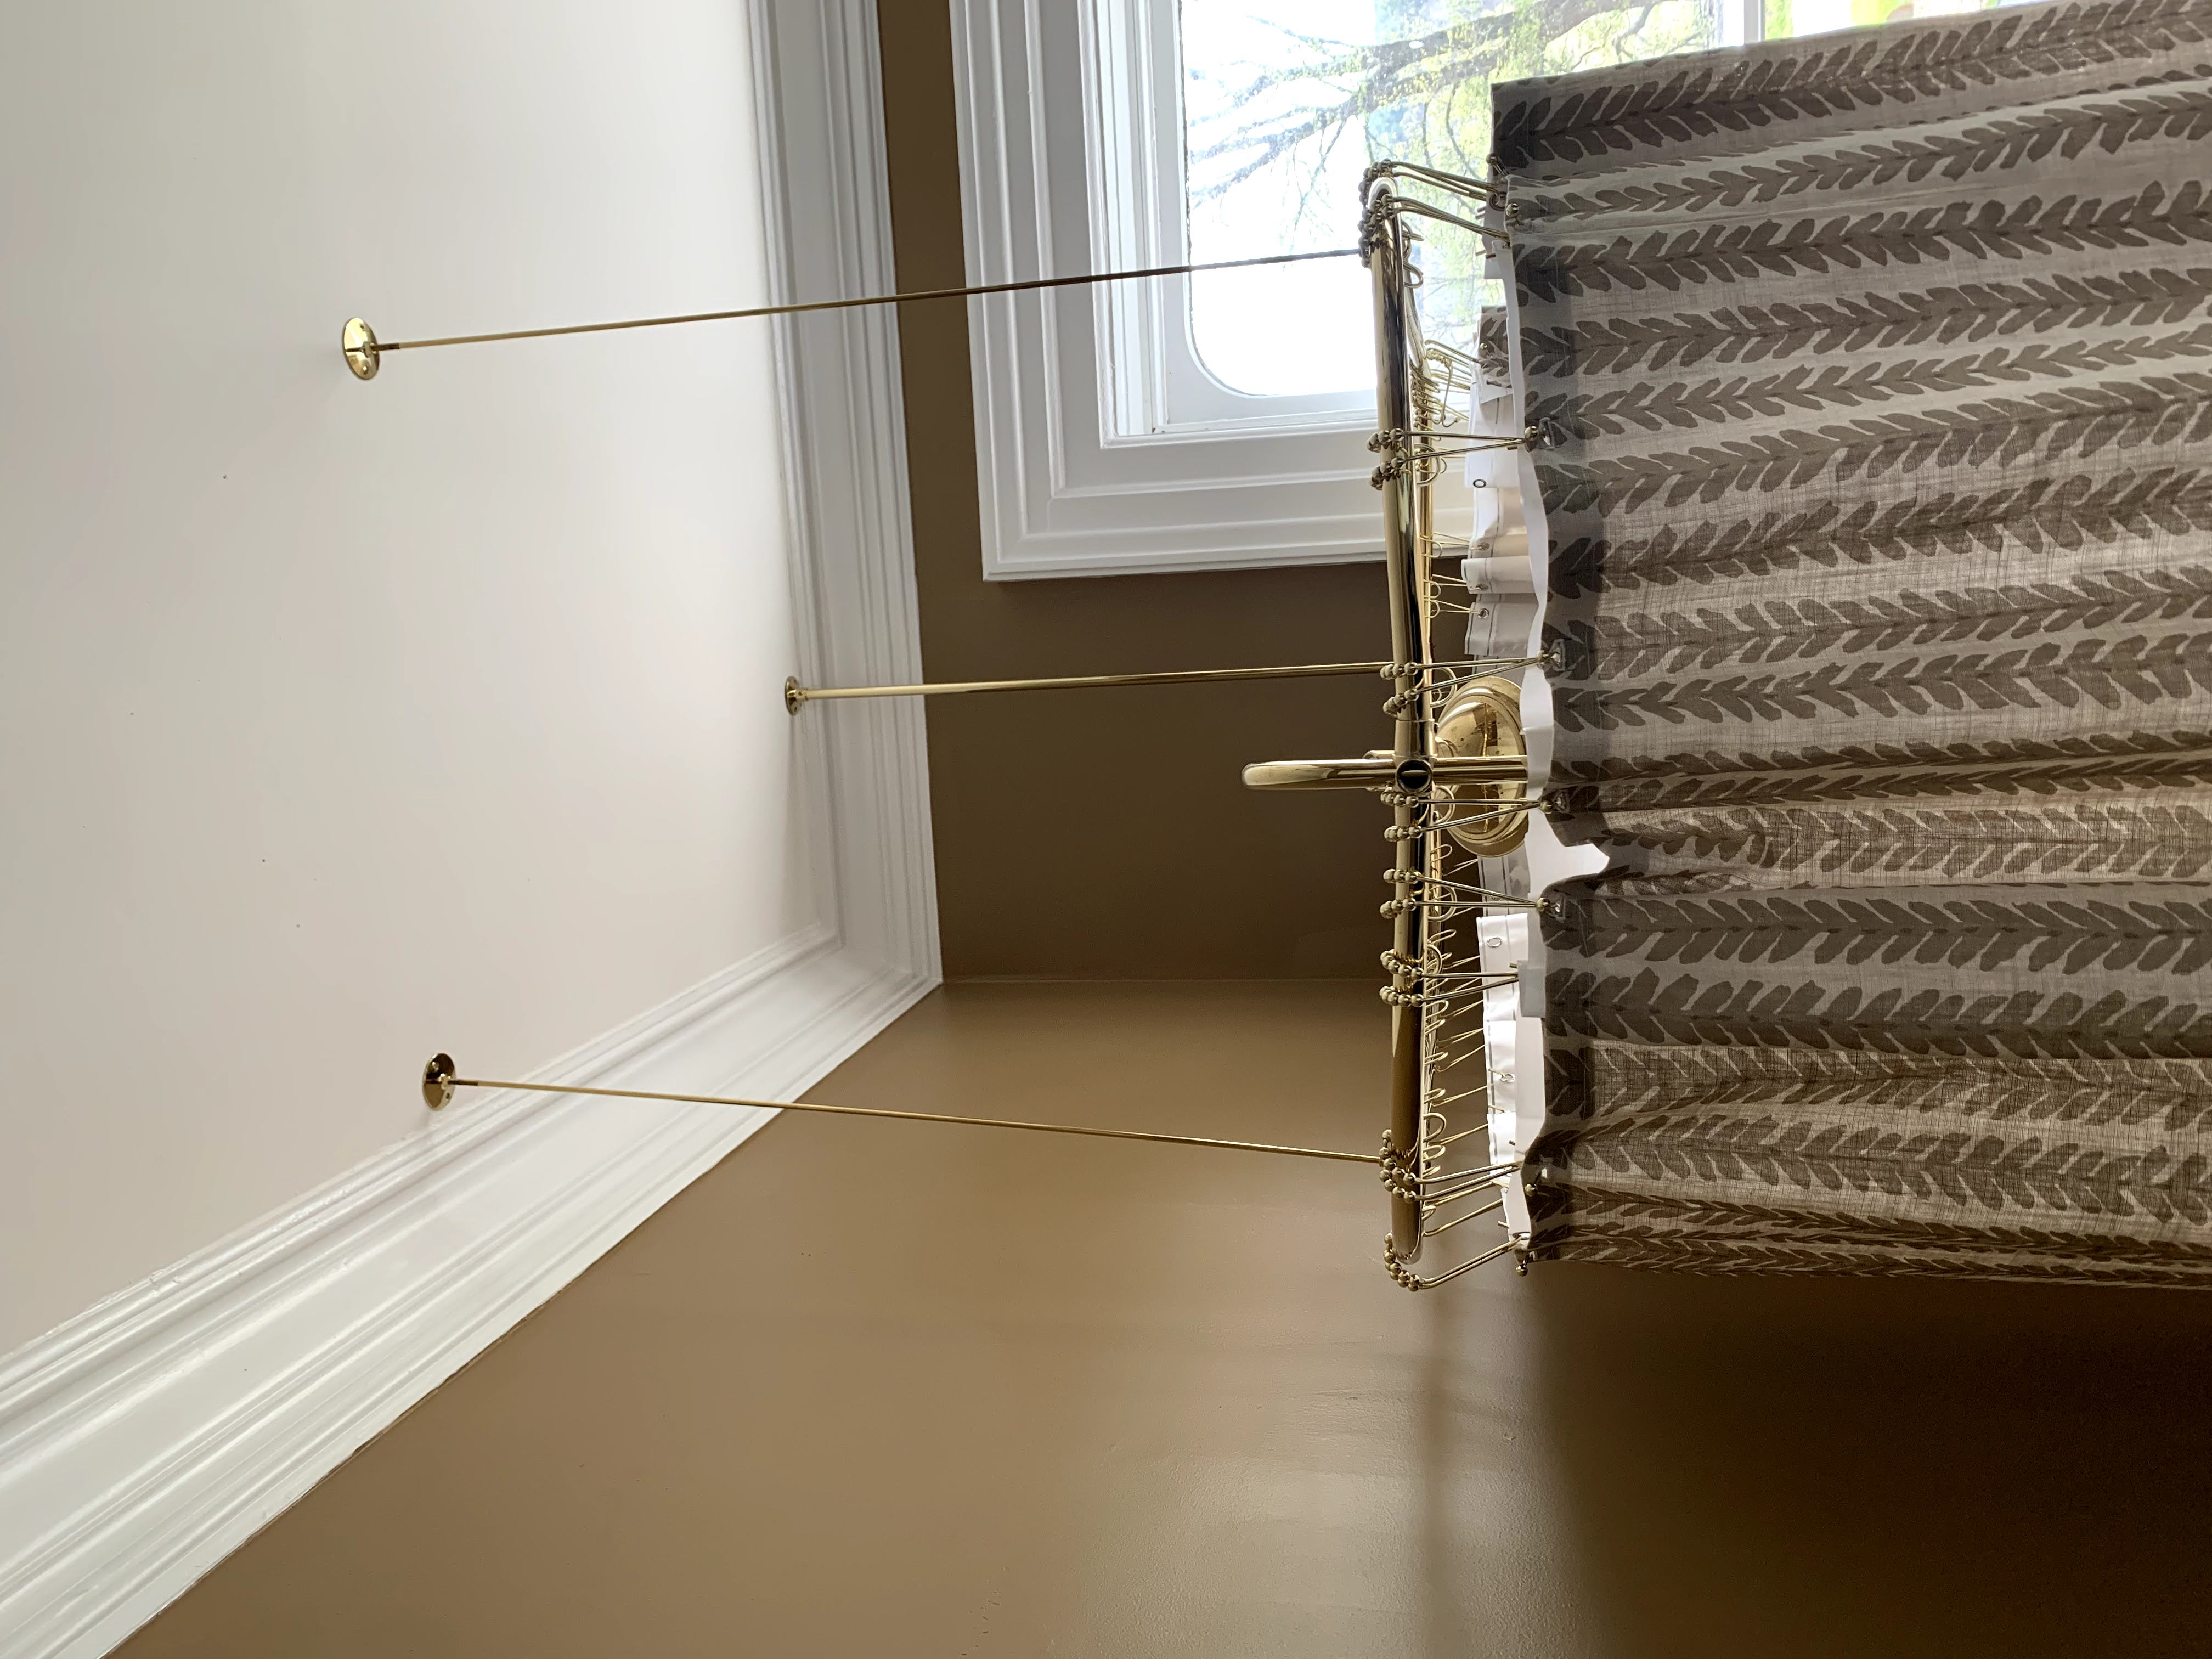 image of top of curtain